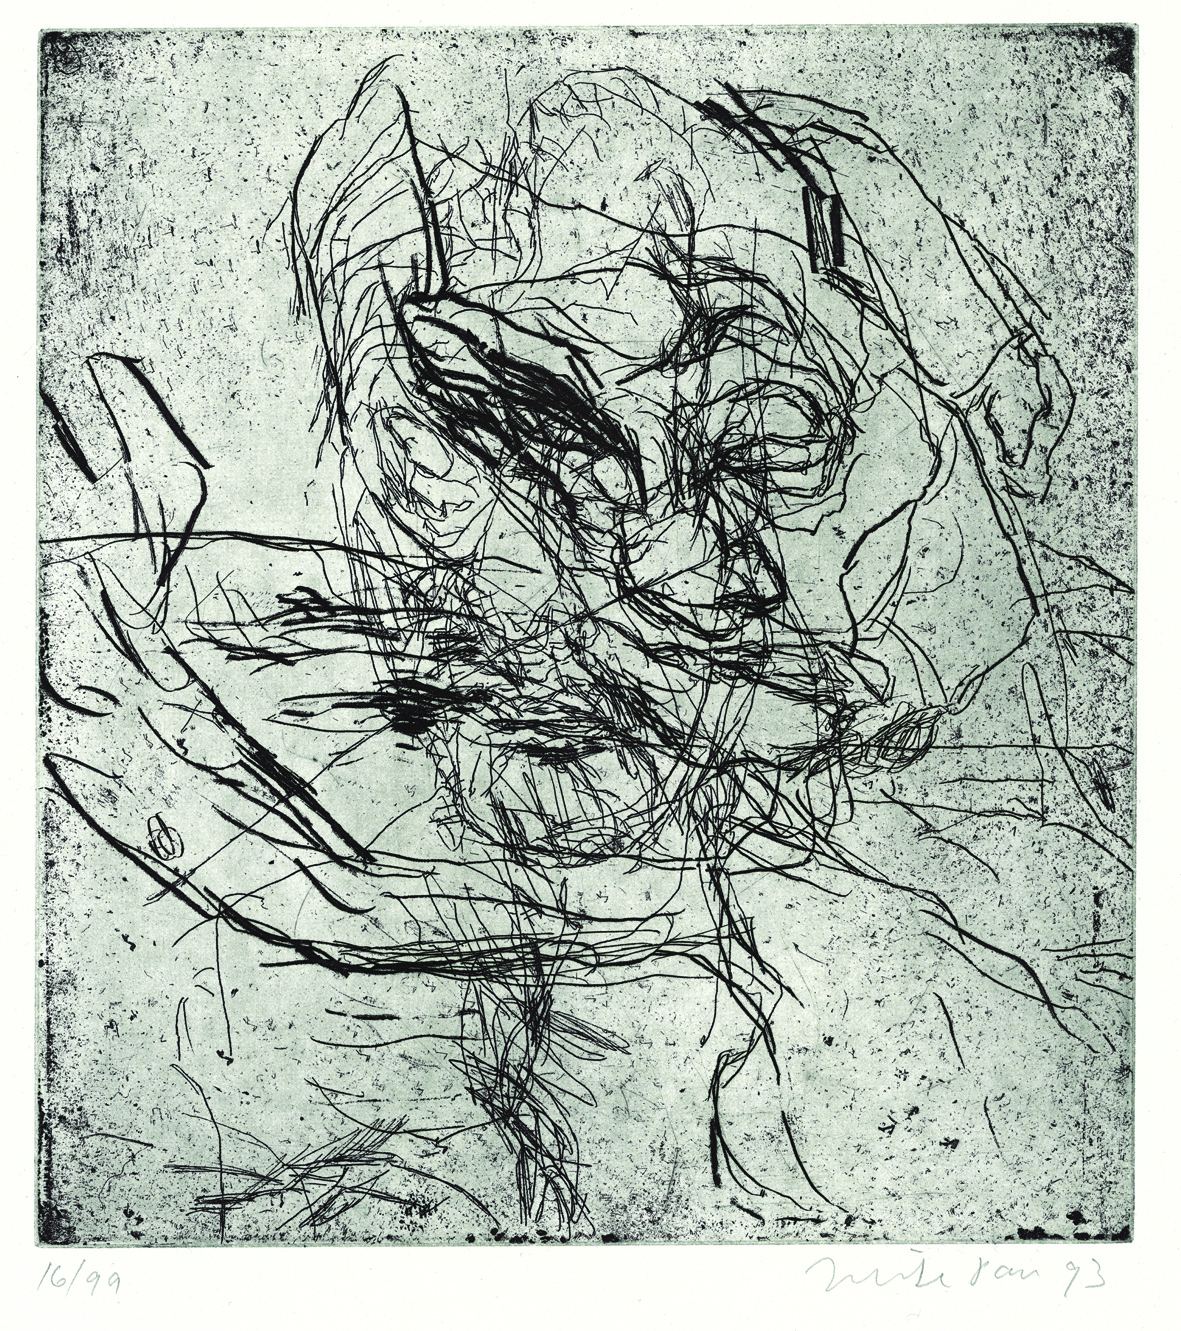 MIKE PARR,  THE WIND , 1993, EDITION OF 99, AU$850  ETCHING, 54 X 39.8CM (SHEET); PRINTER: JOHN LOANE, VIRIDIAN PRESS, MELBOURNE